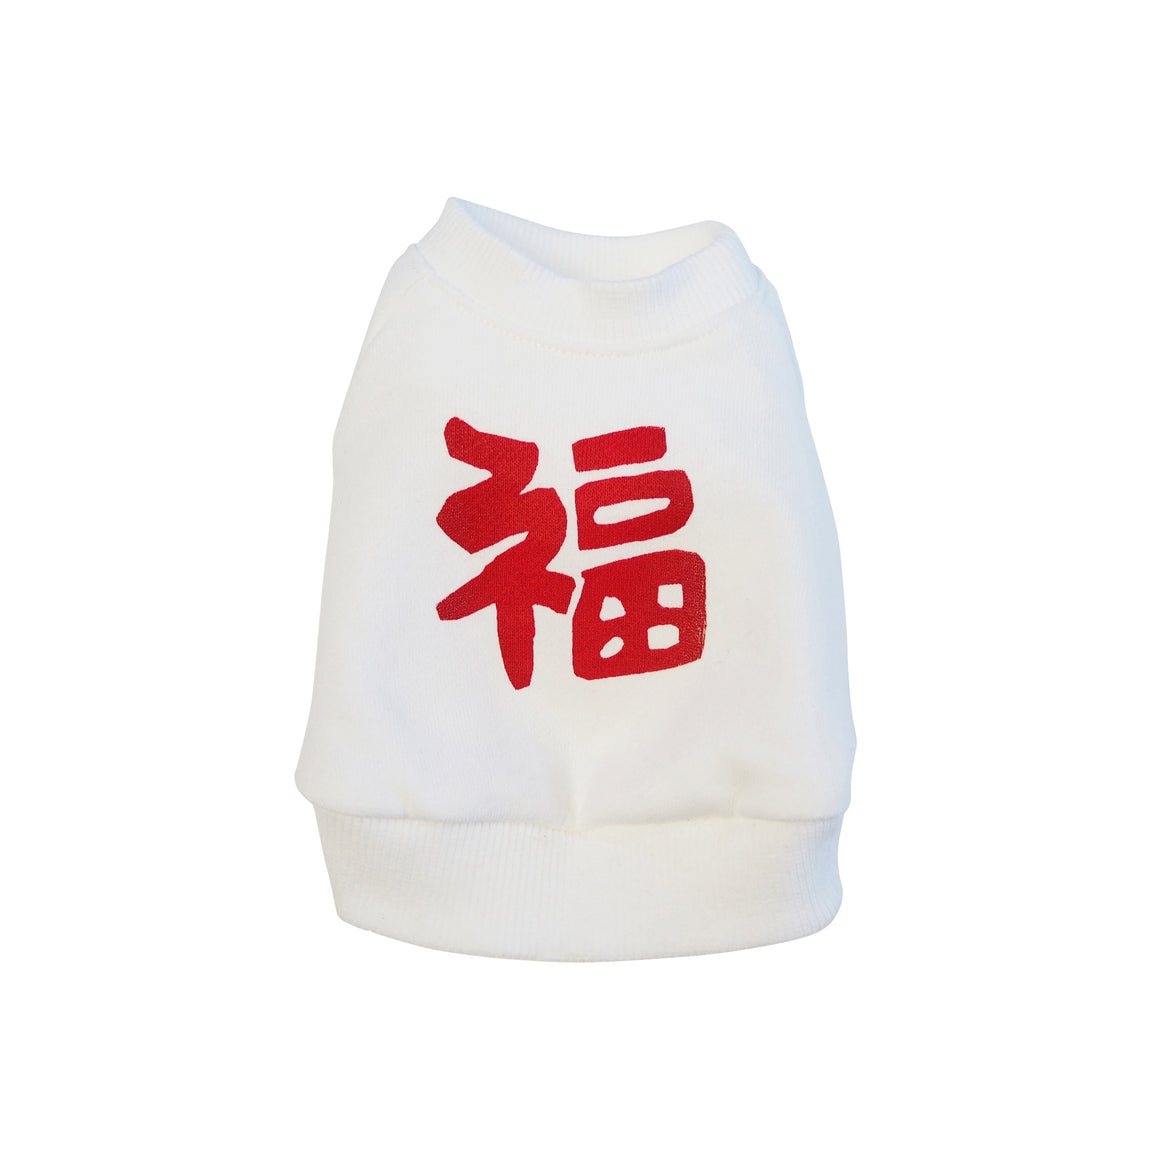 福 FUKU Dog's Sweatshirt White